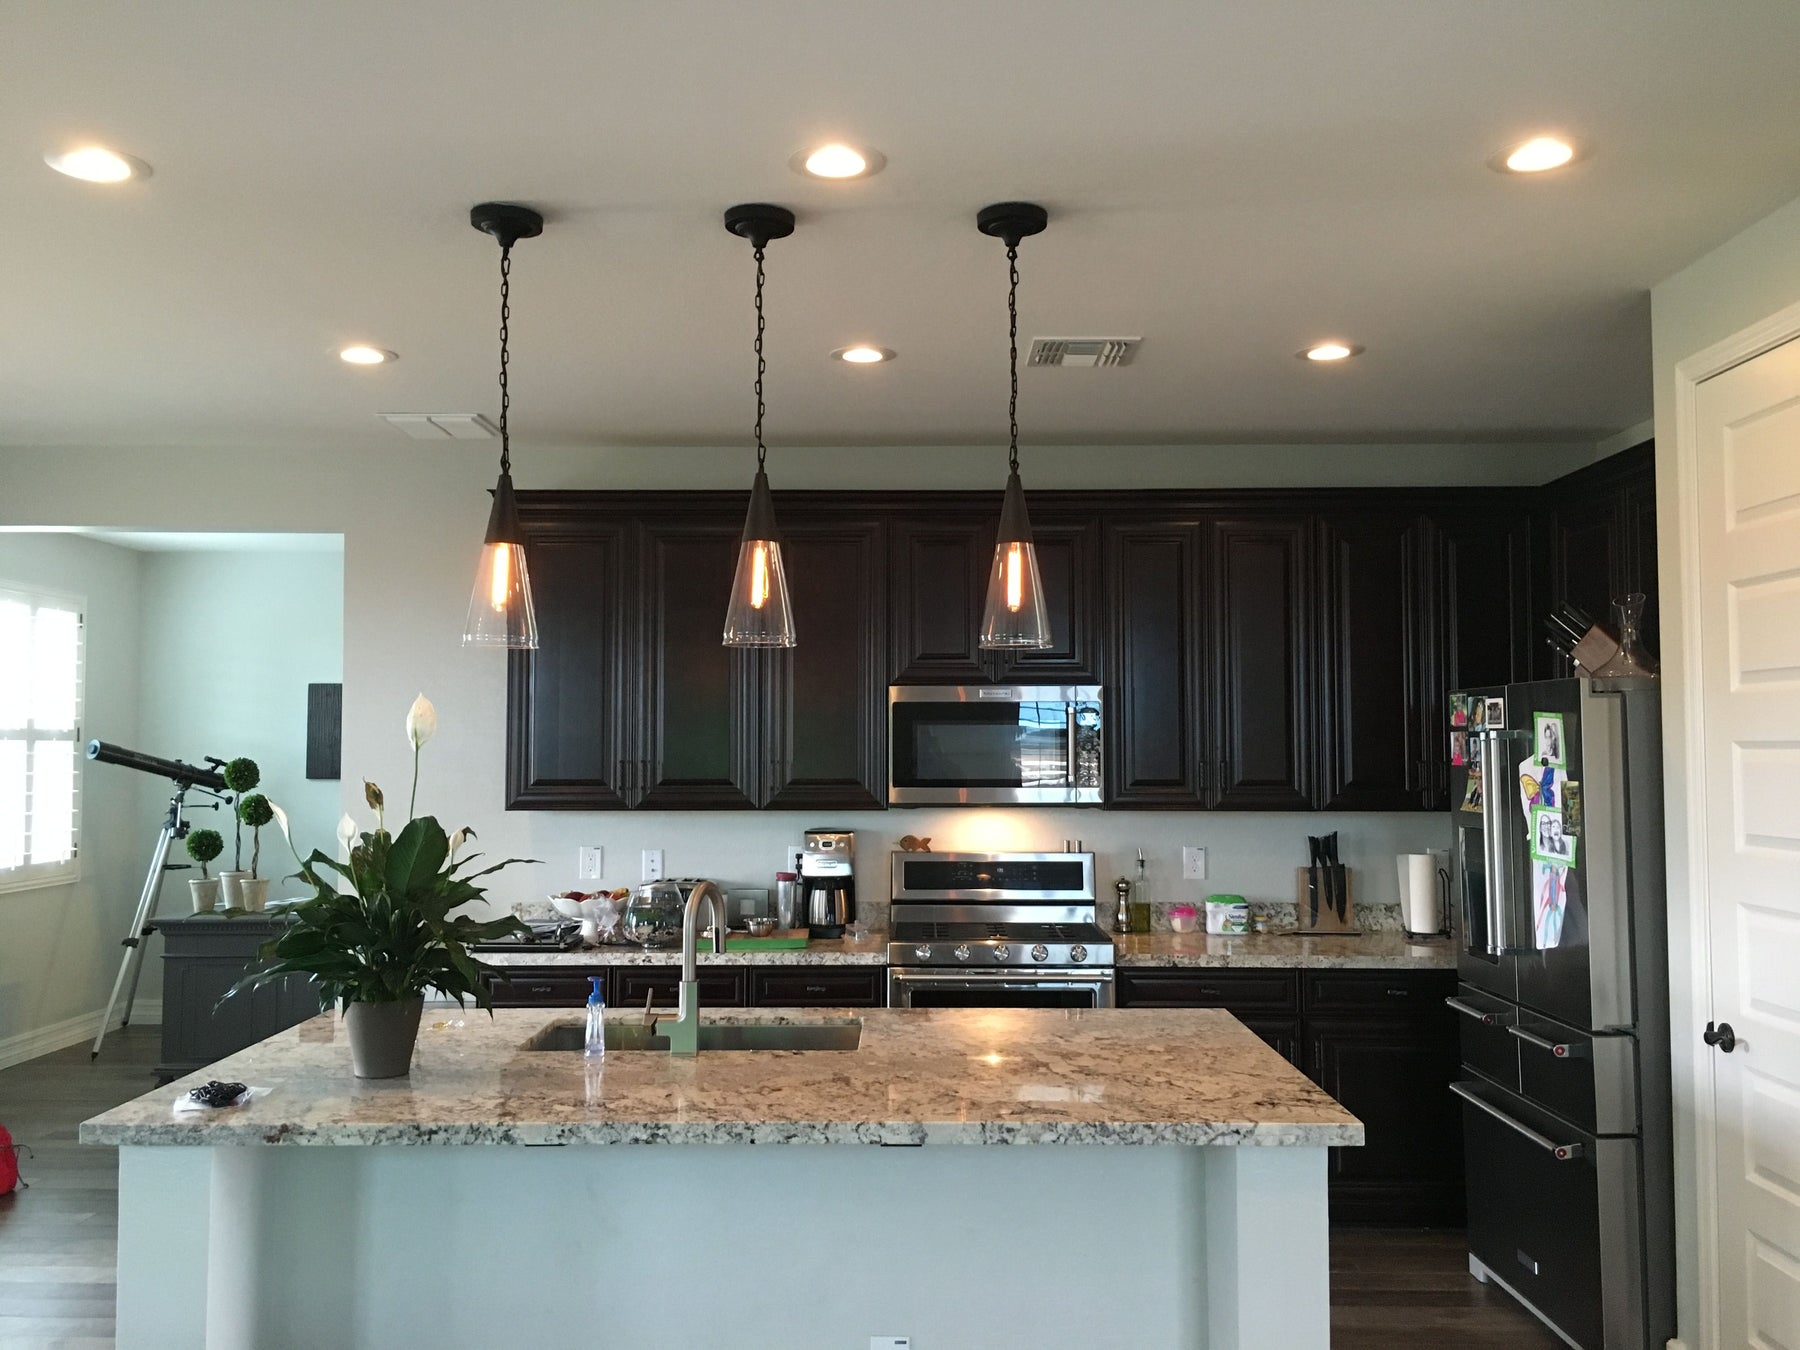 4 Kitchen Lighting Tips to remember